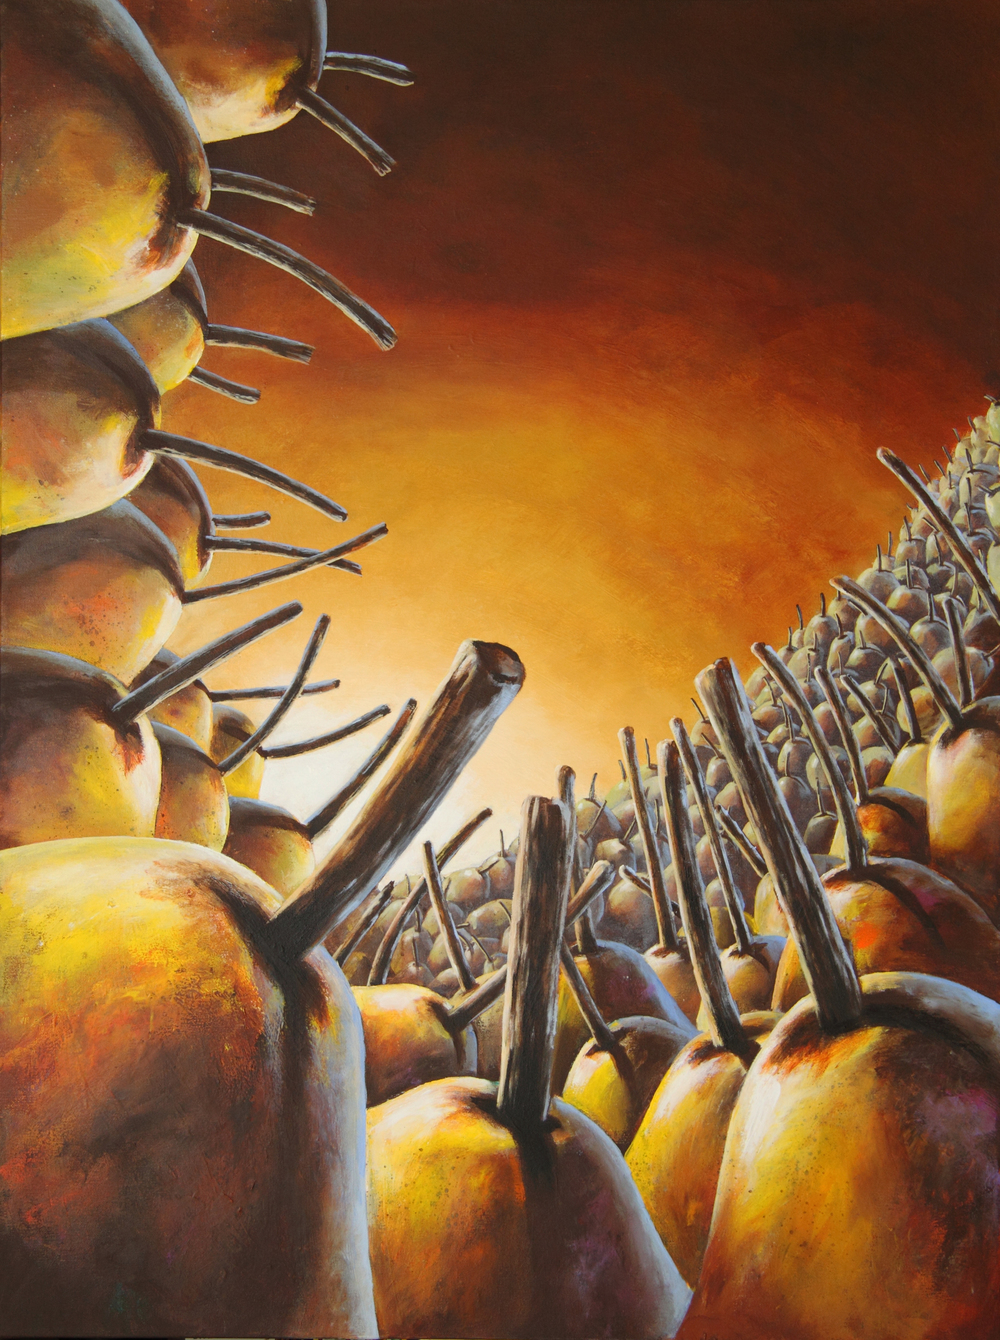 bill_higginson_the venus pear trap-surrealism_painting-acrylic-painting-pears-fruit-canvas